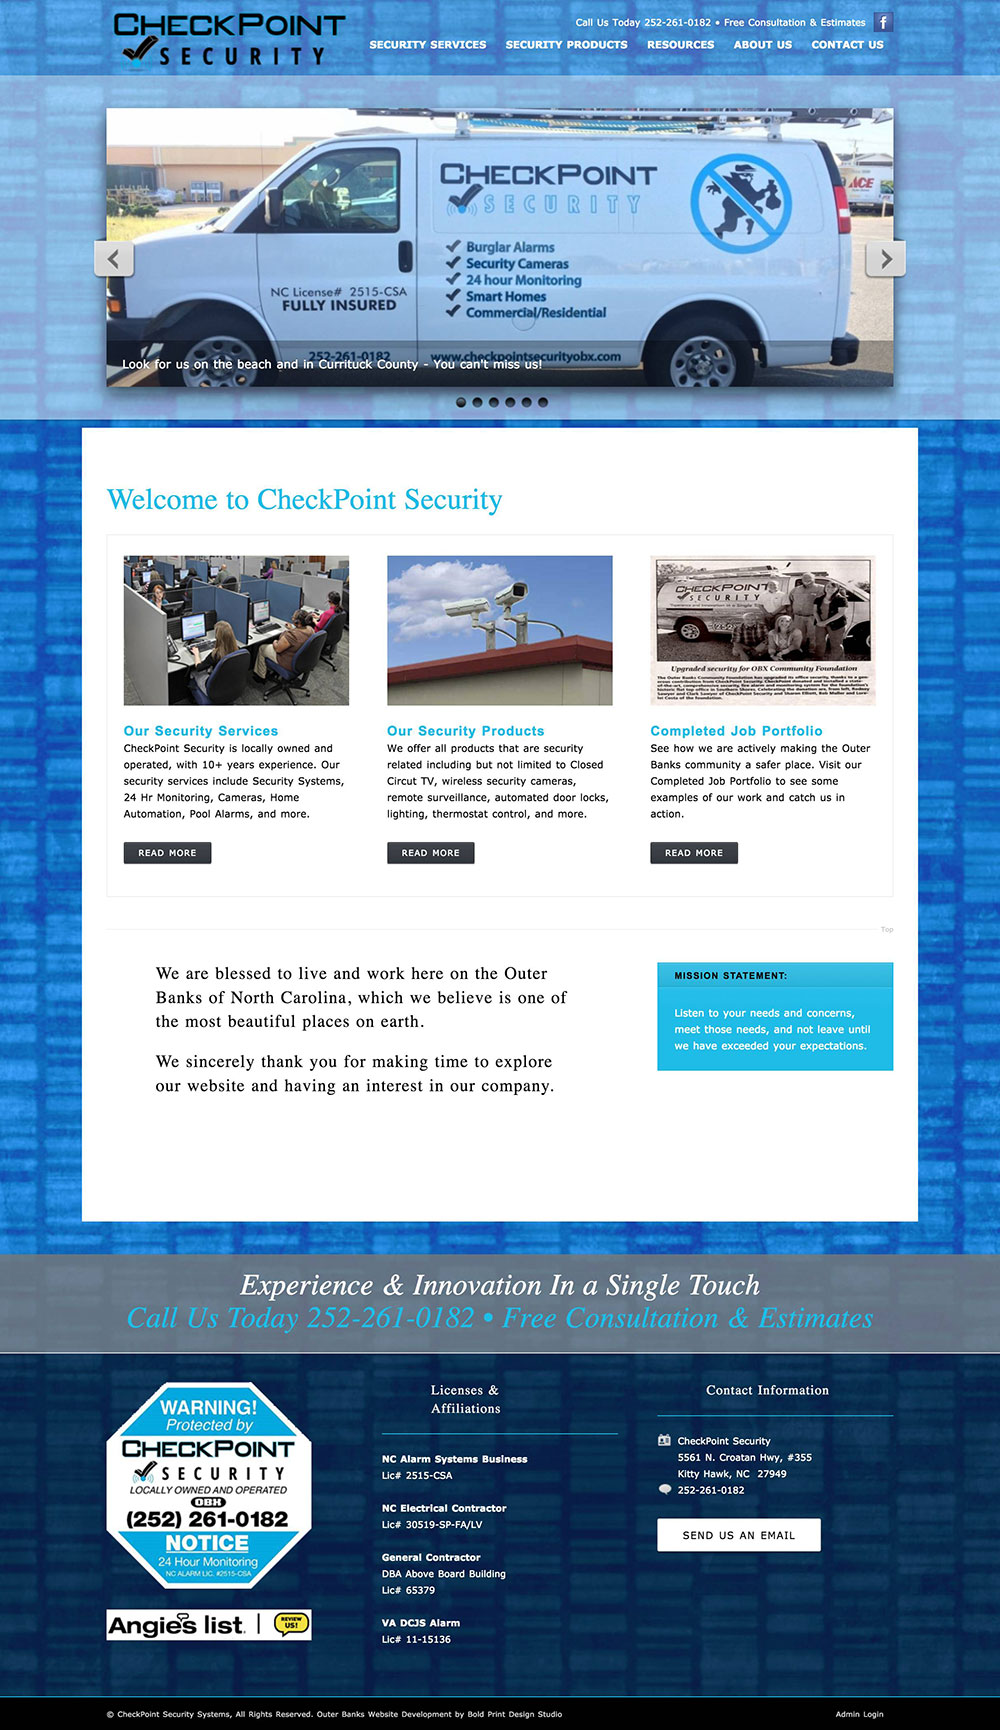 CheckPoint Security Homepage